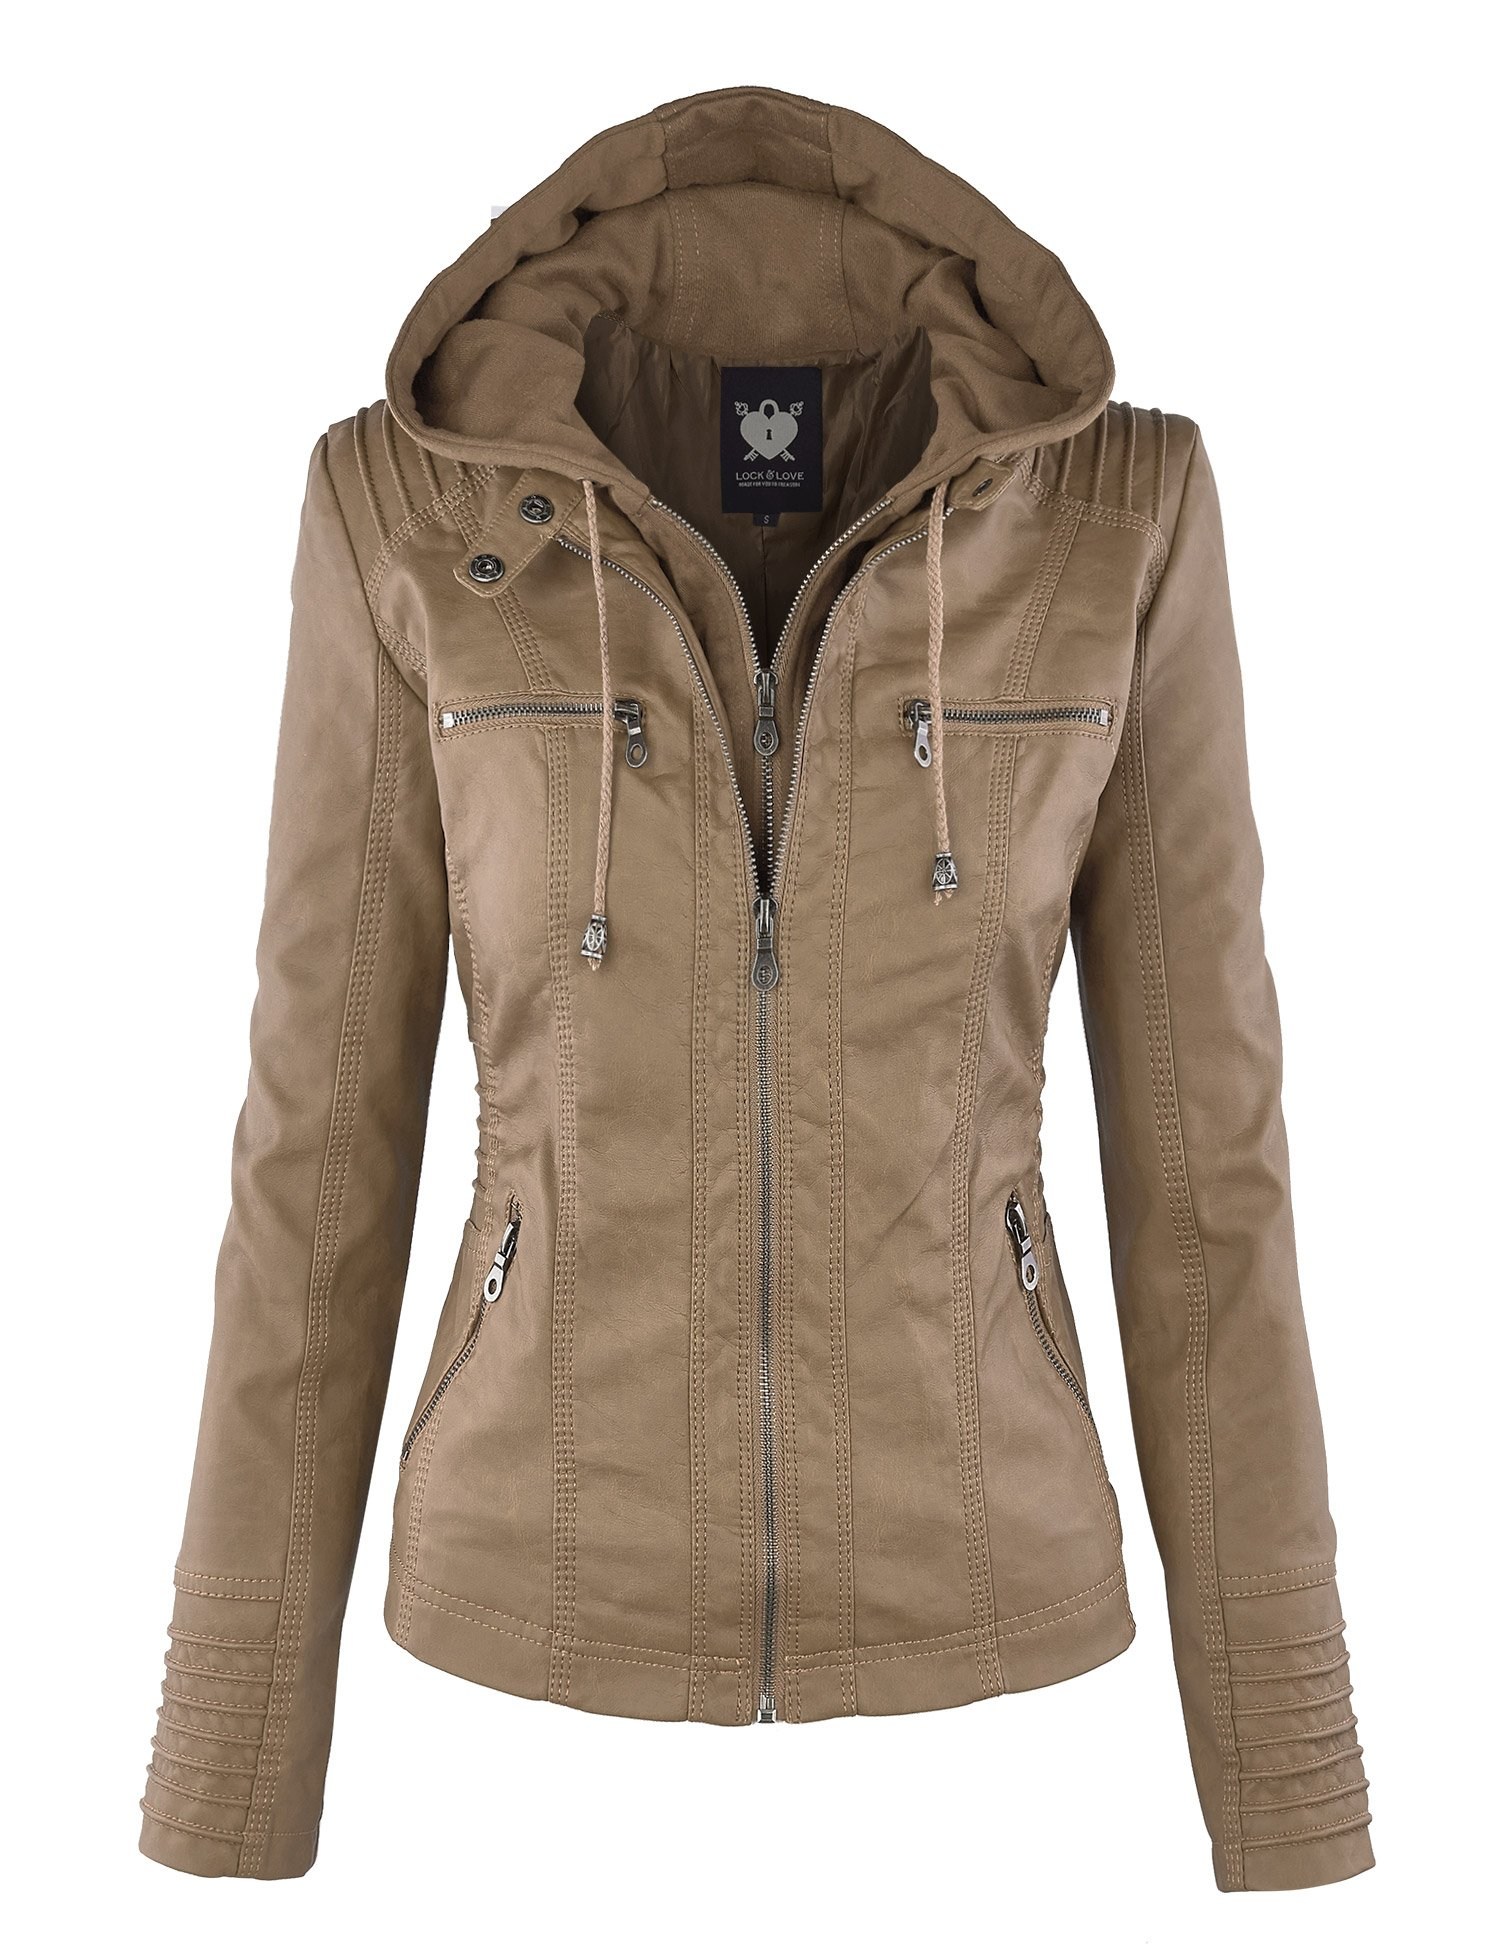 WJC663 Womens Removable Hoodie Motorcyle Jacket M KHAKI